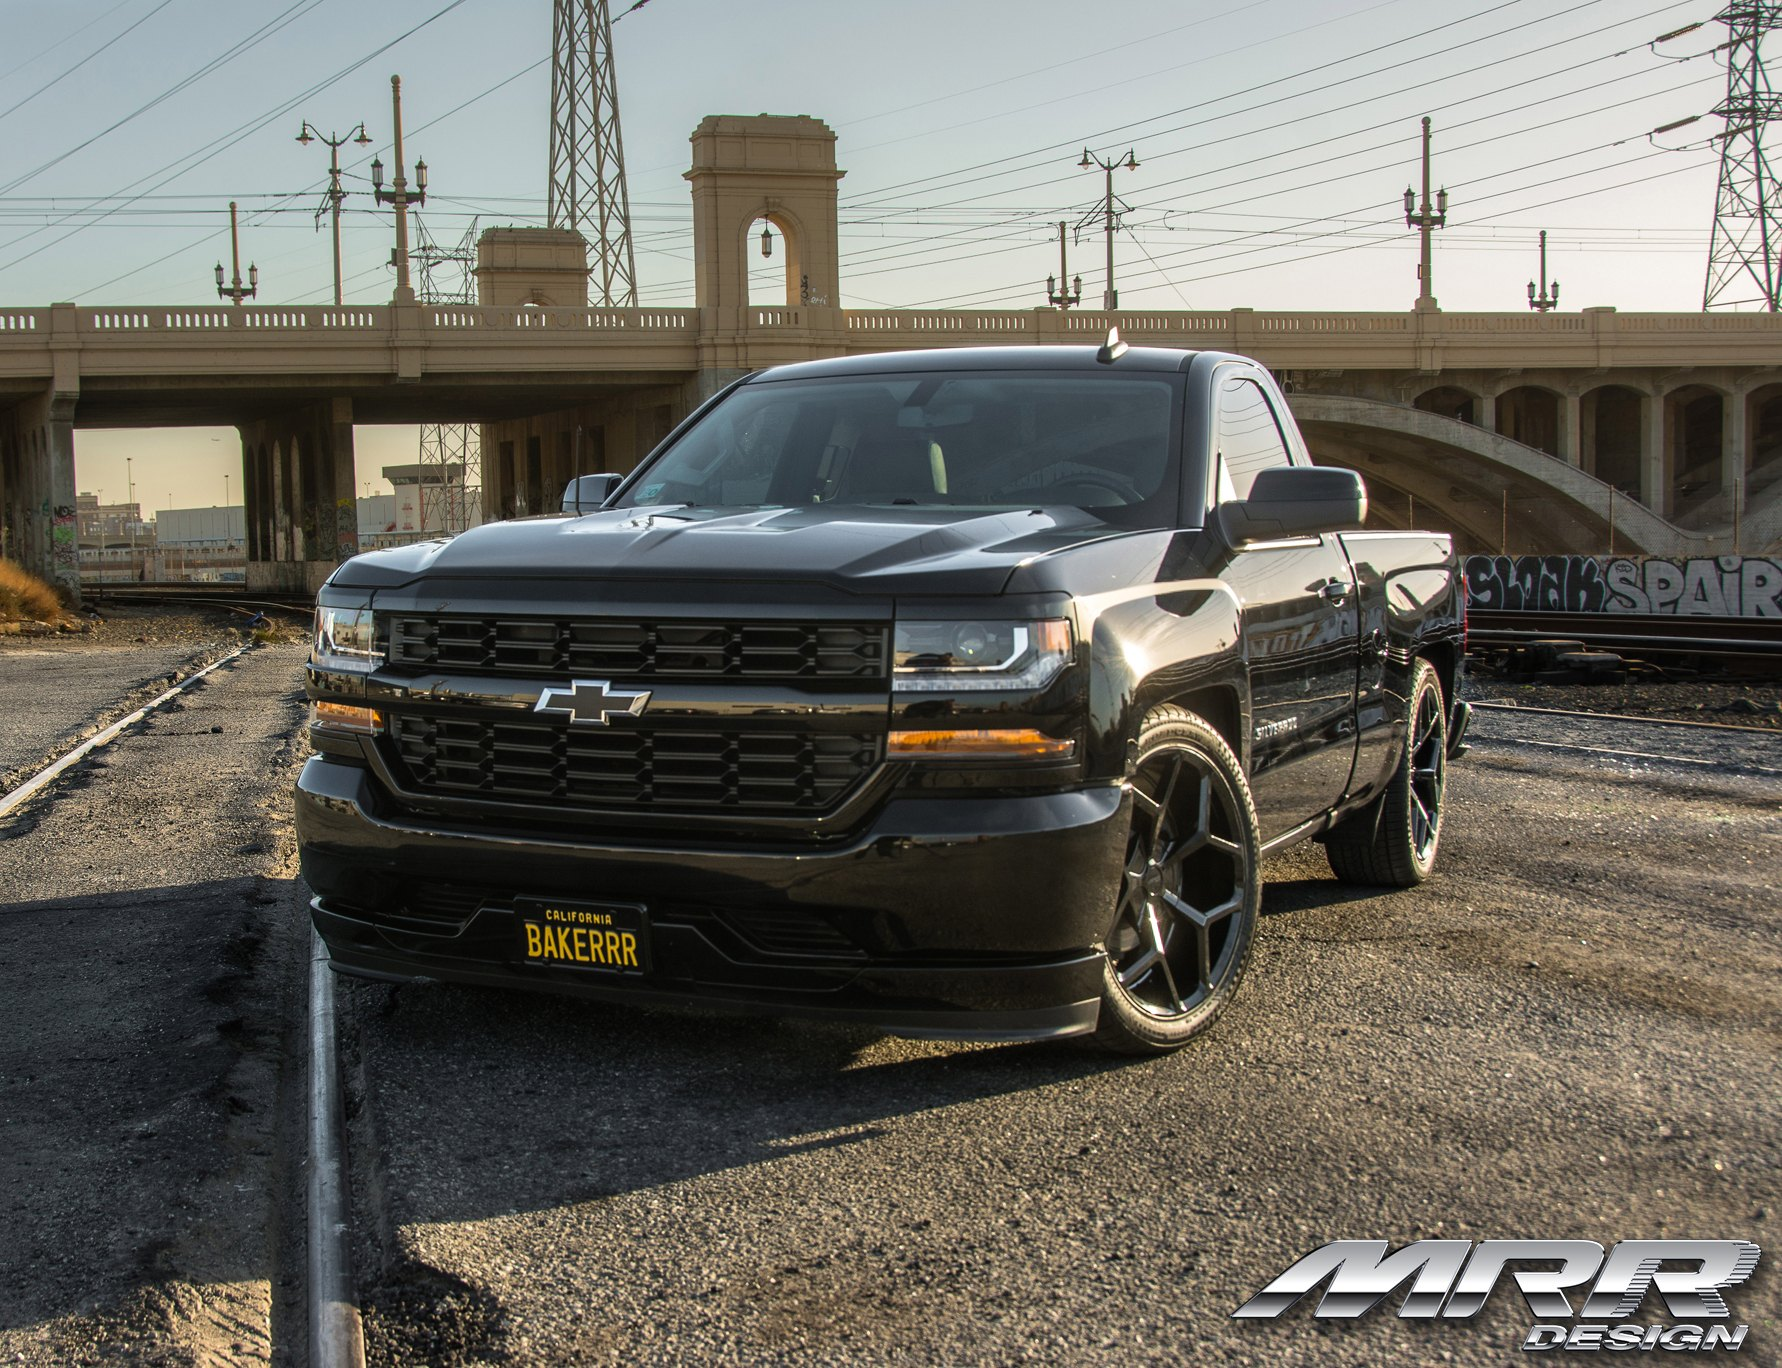 Silverado Muscle Truck With Lowered Suspension And Mrr Wheels Carid Com Gallery